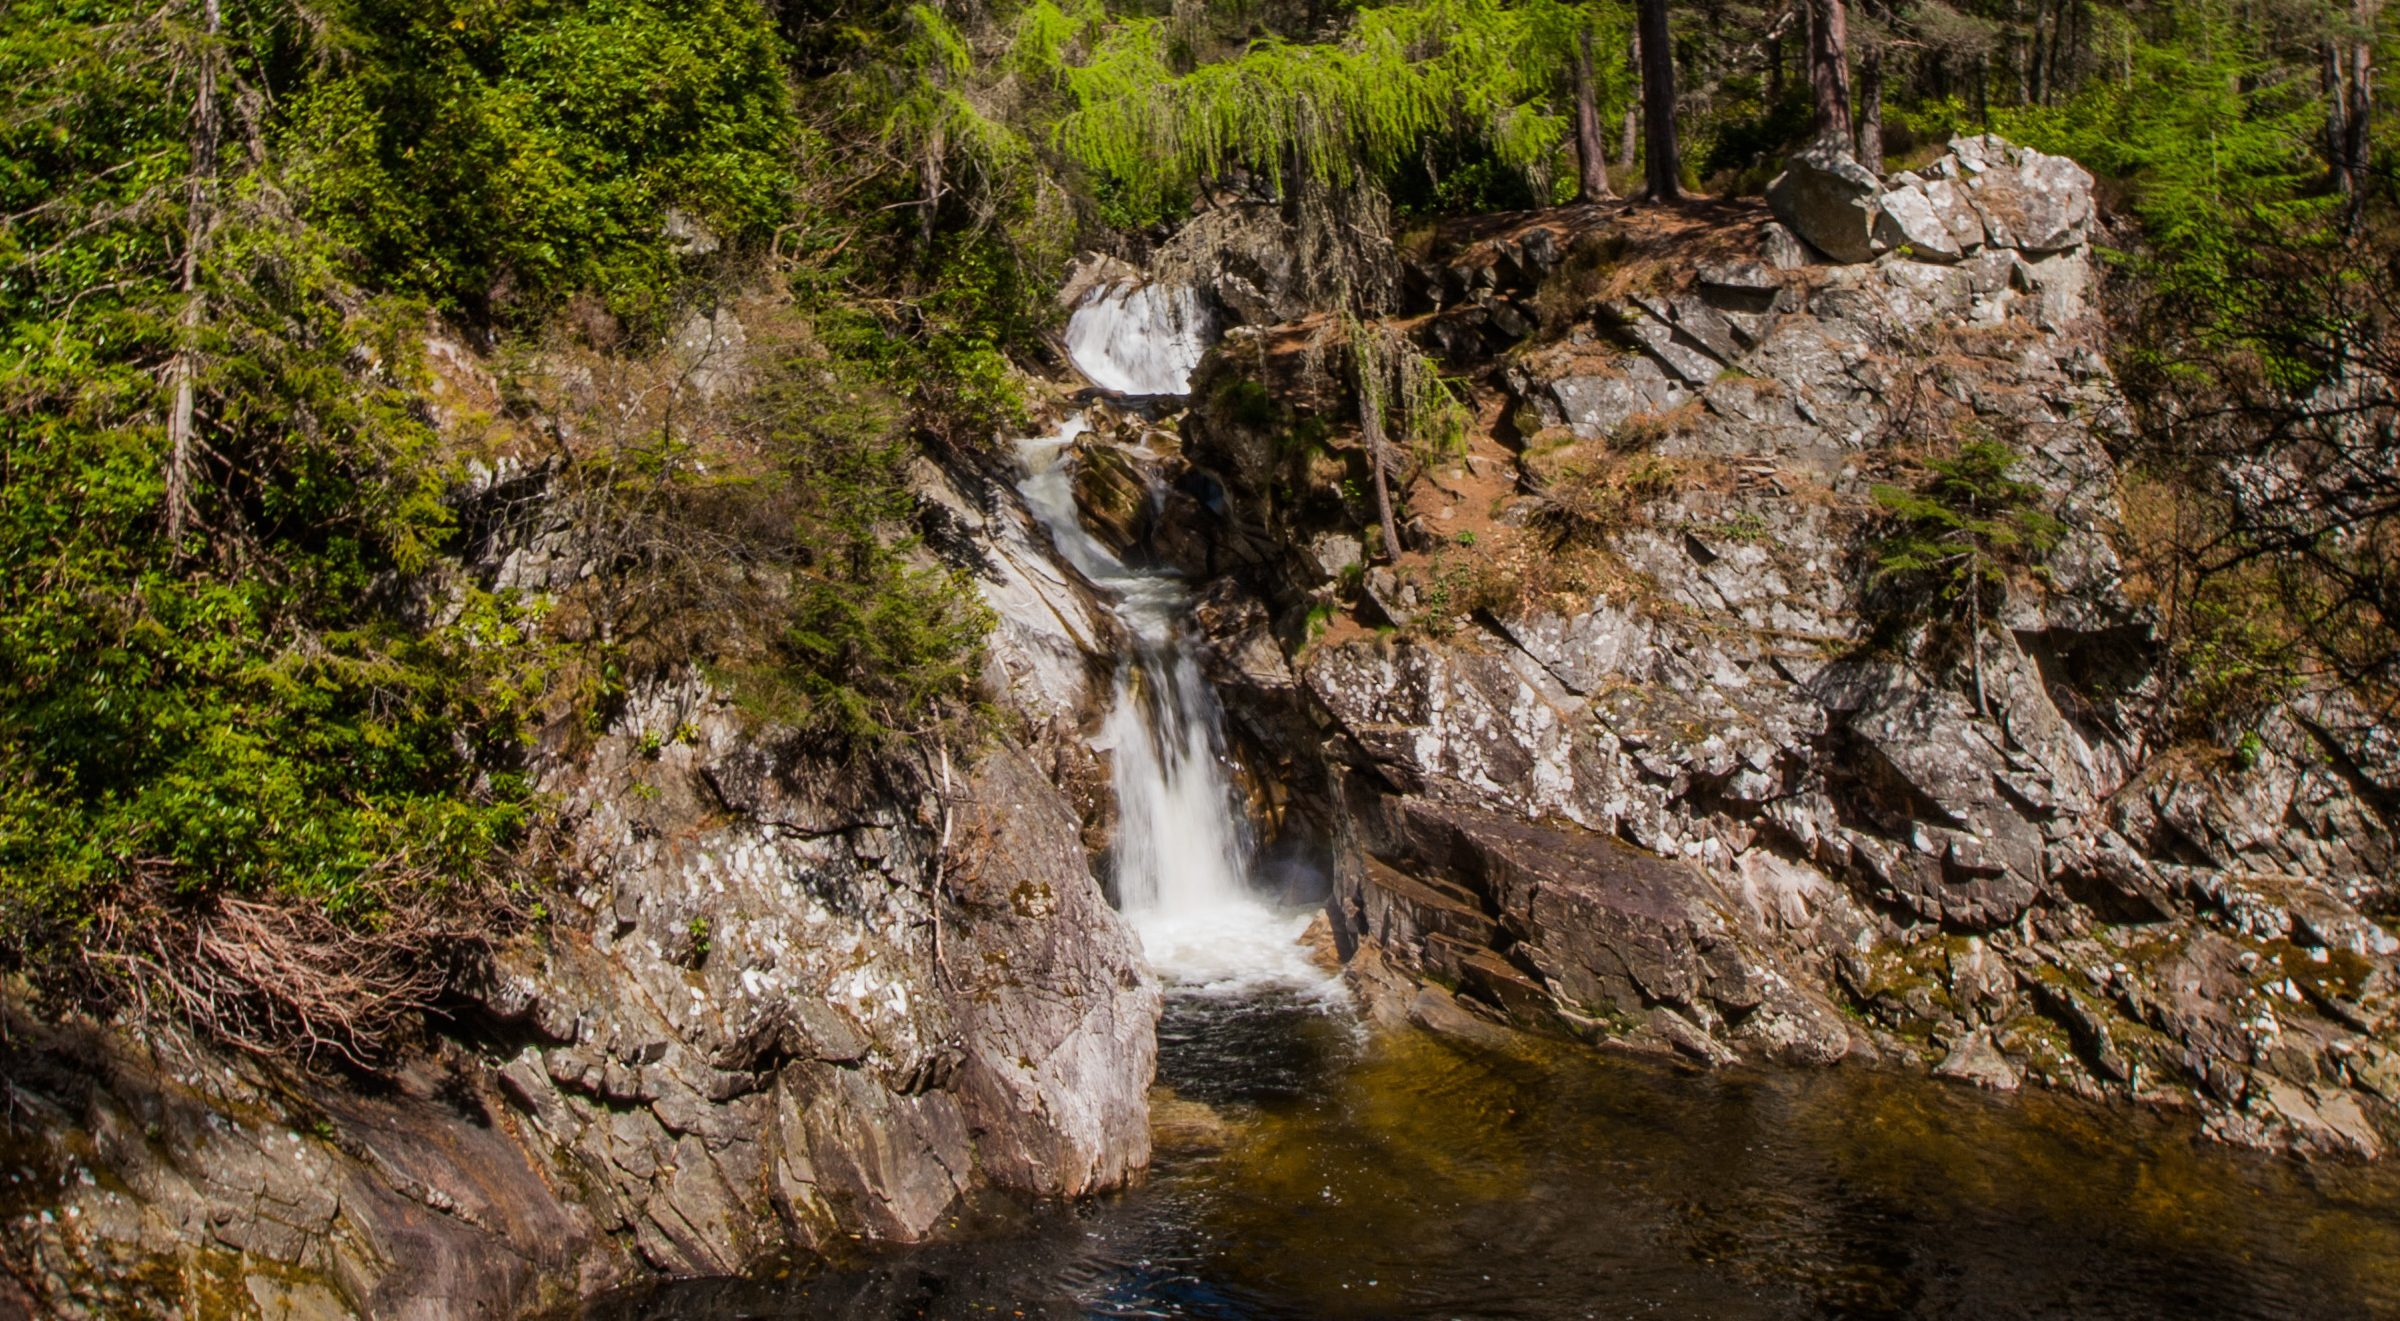 A section of the Falls of Bruar.